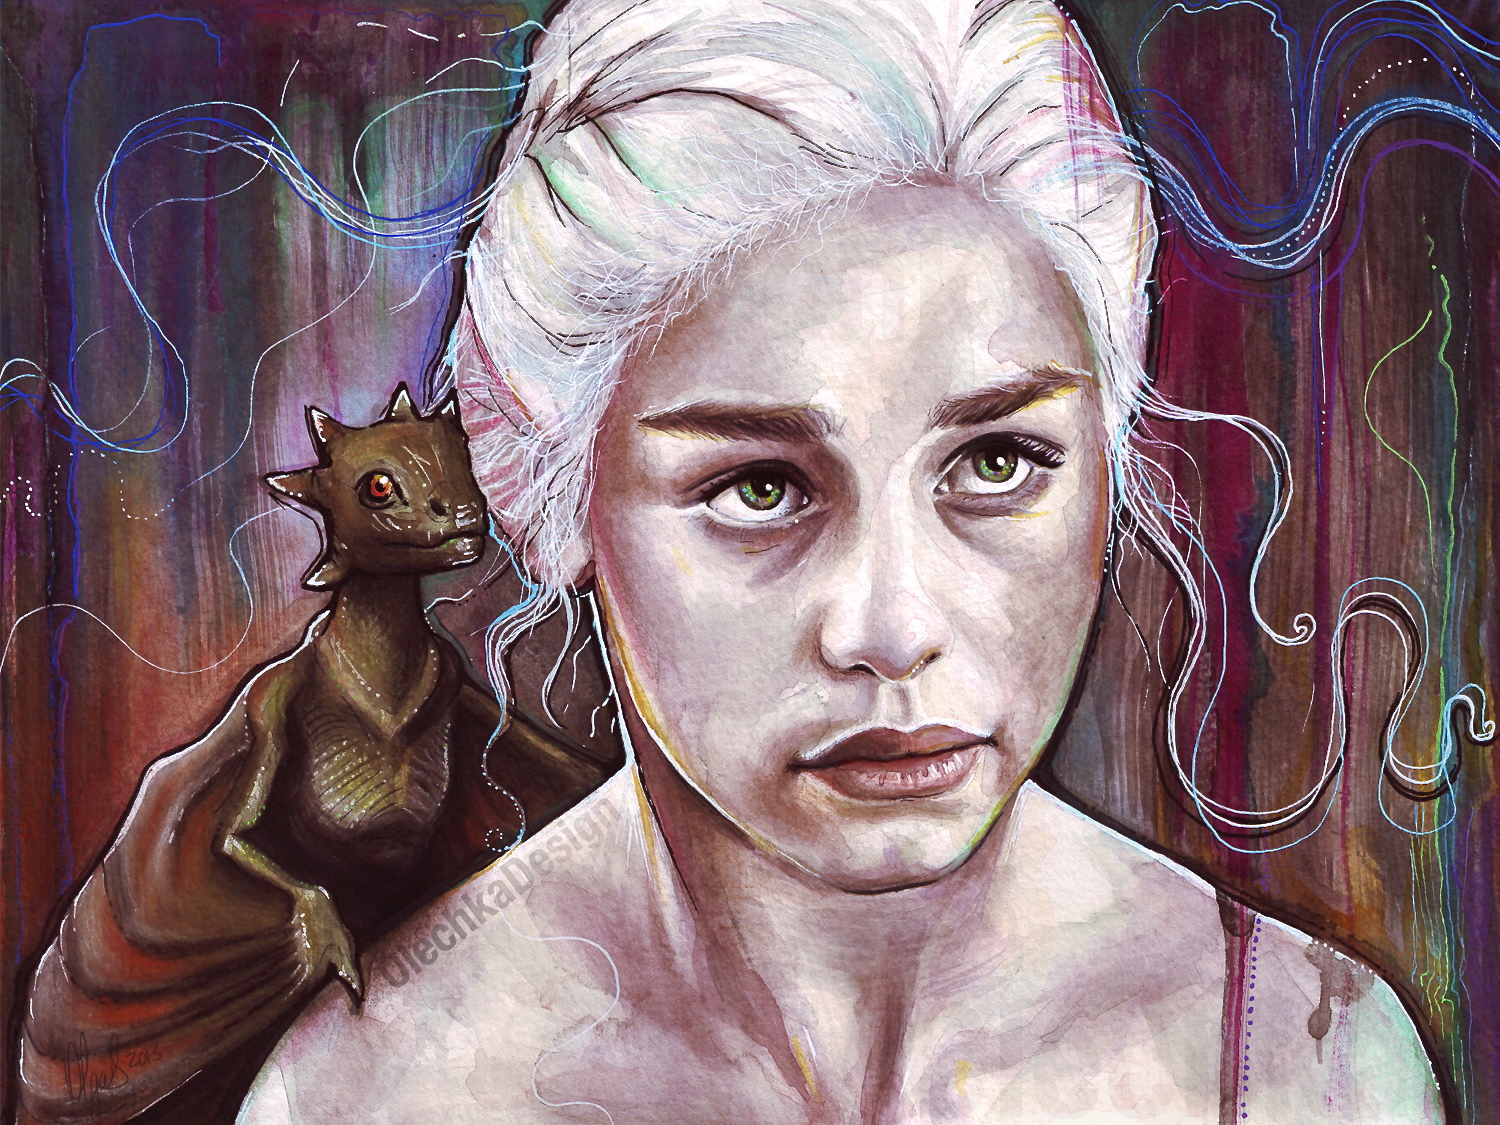 Daenerys_targaryen_game-of-thrones-art.JPG